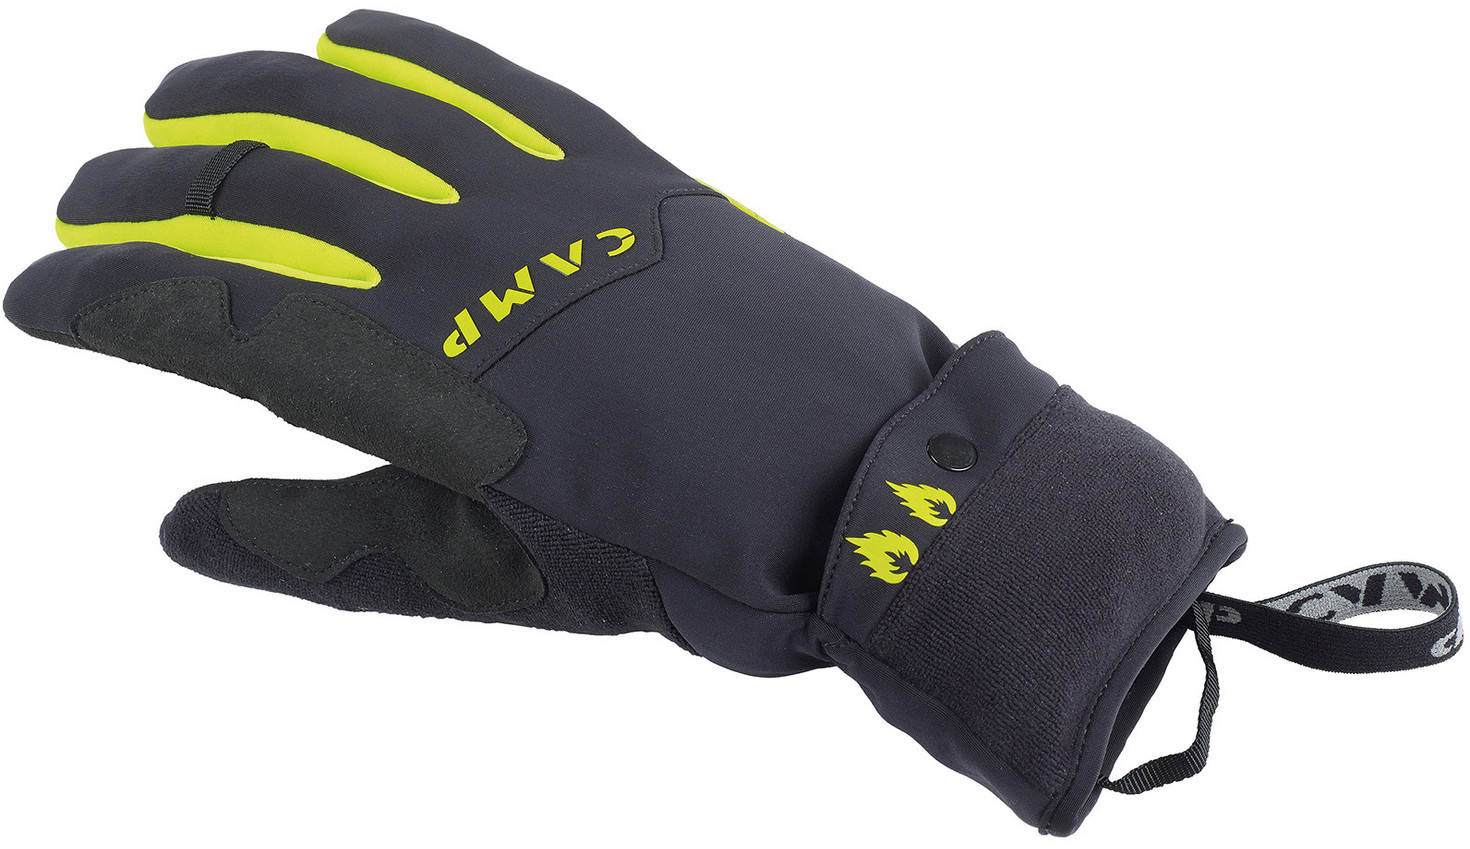 Camp_G_Comp_Warm_Gloves_Black_Lime[1470x849]